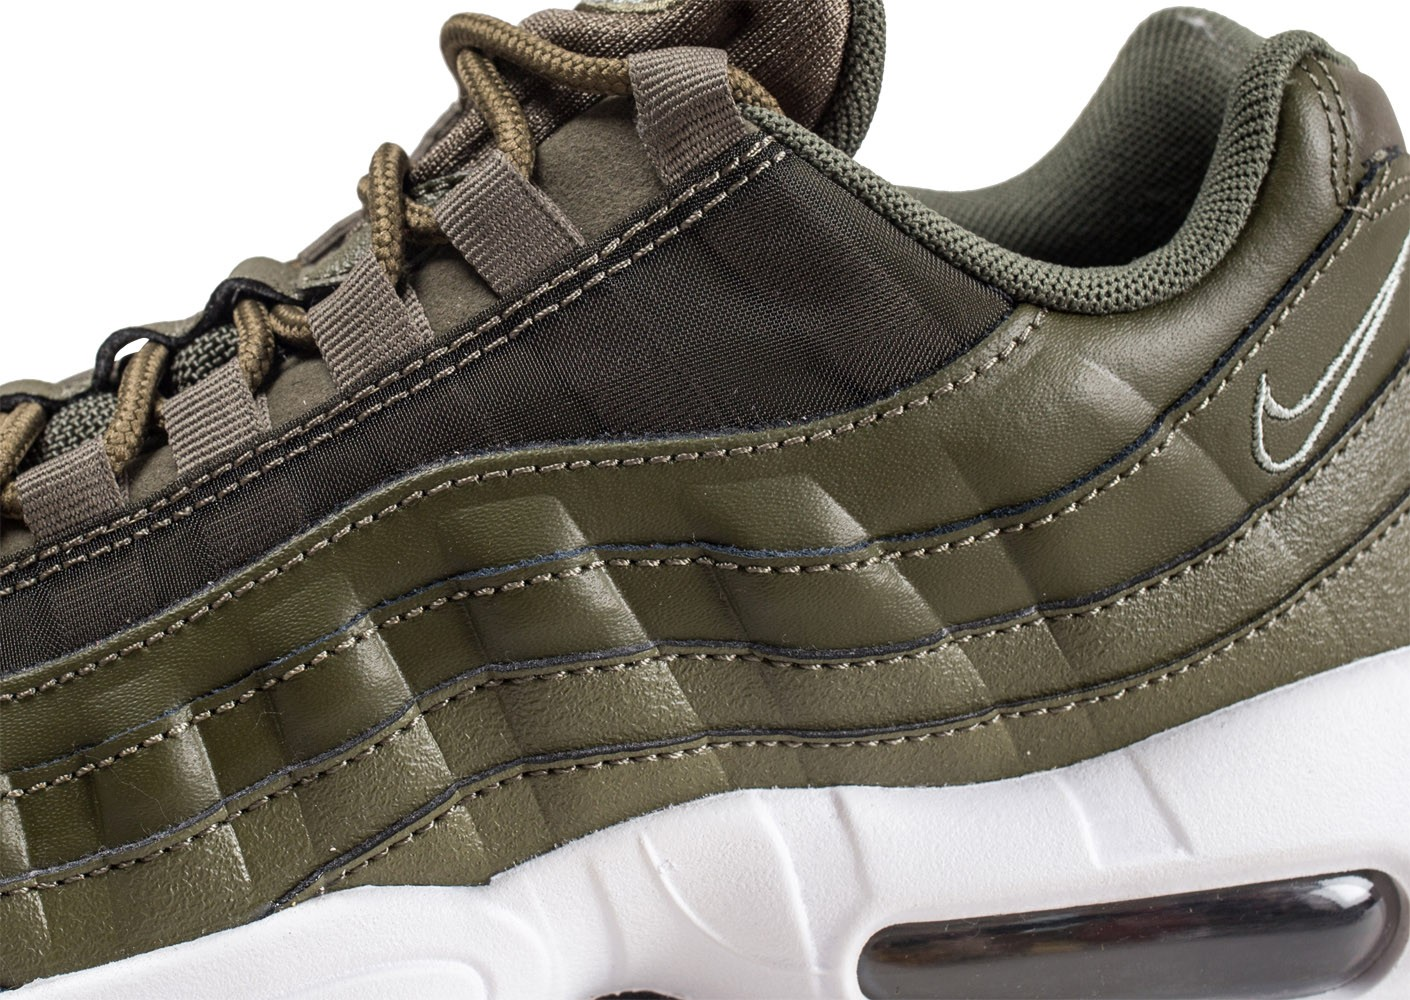 Nike Air Max 95 OG Olive femme Chaussures Toutes les